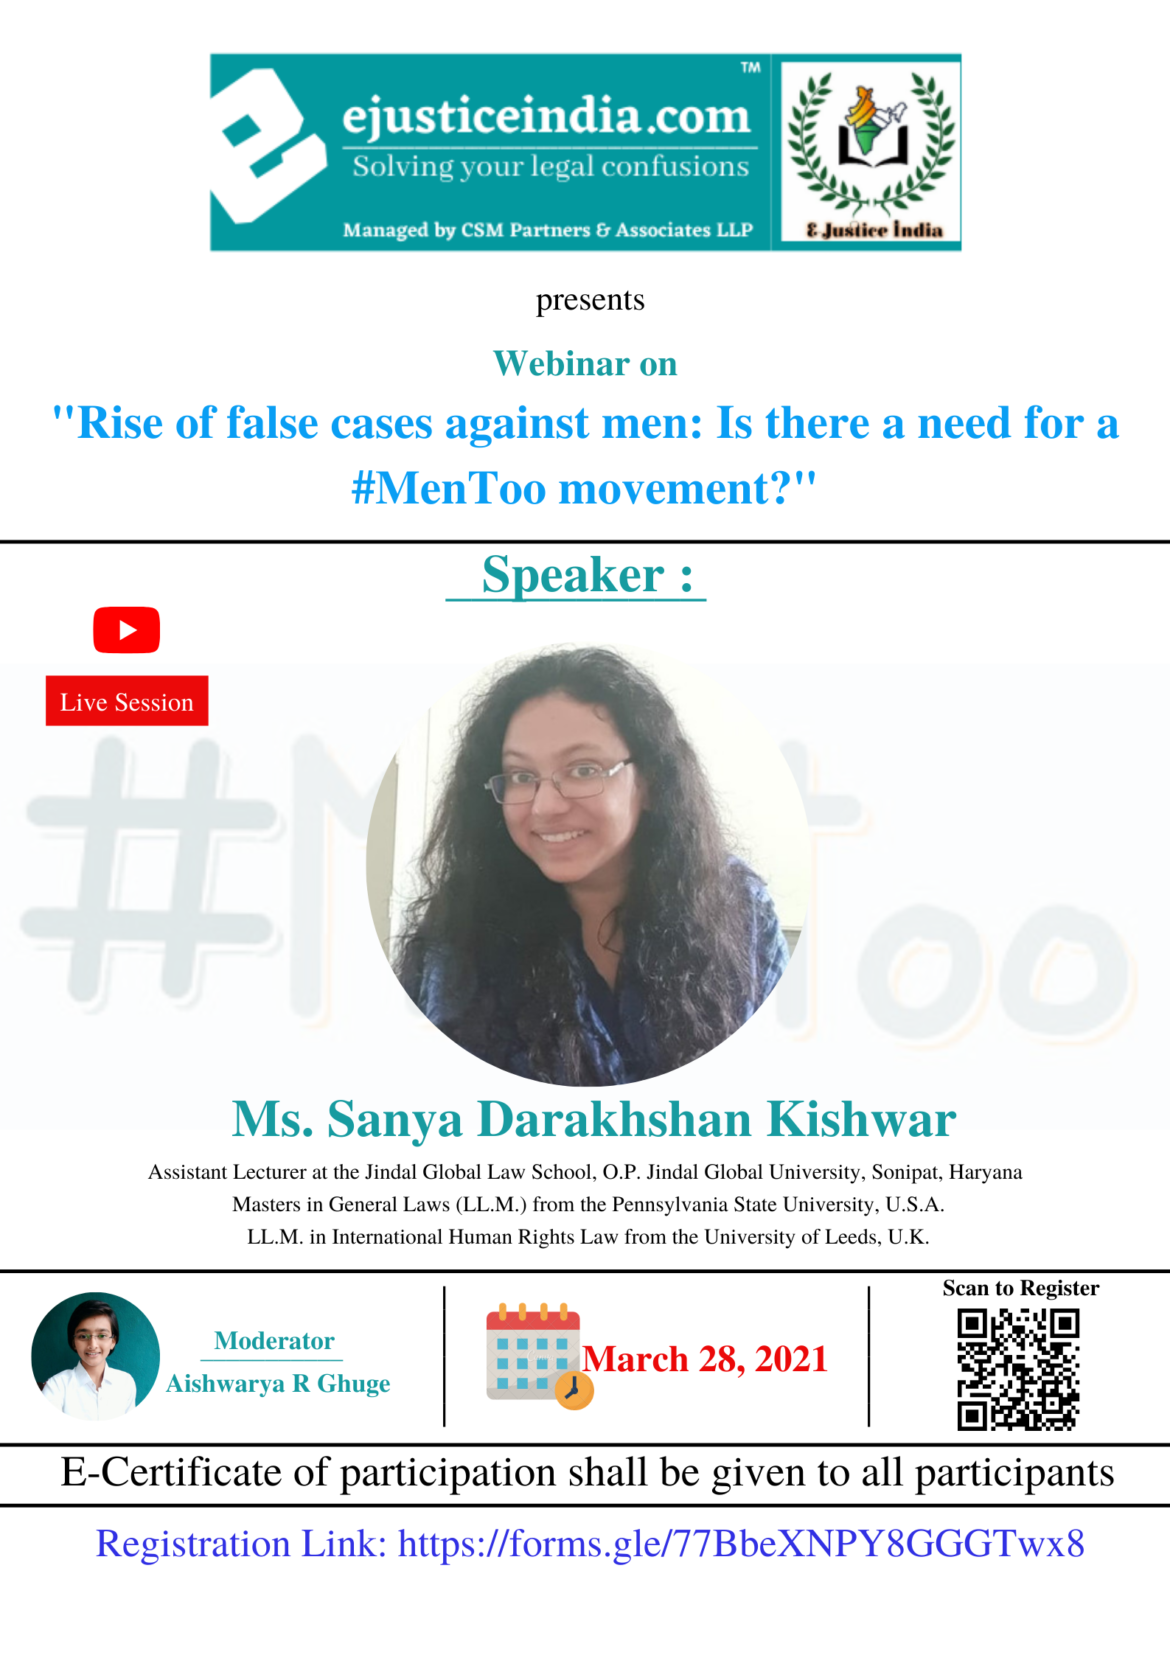 """Webinar on """"Rise of false cases against men: Is there a need for a #MenToo movement?"""""""